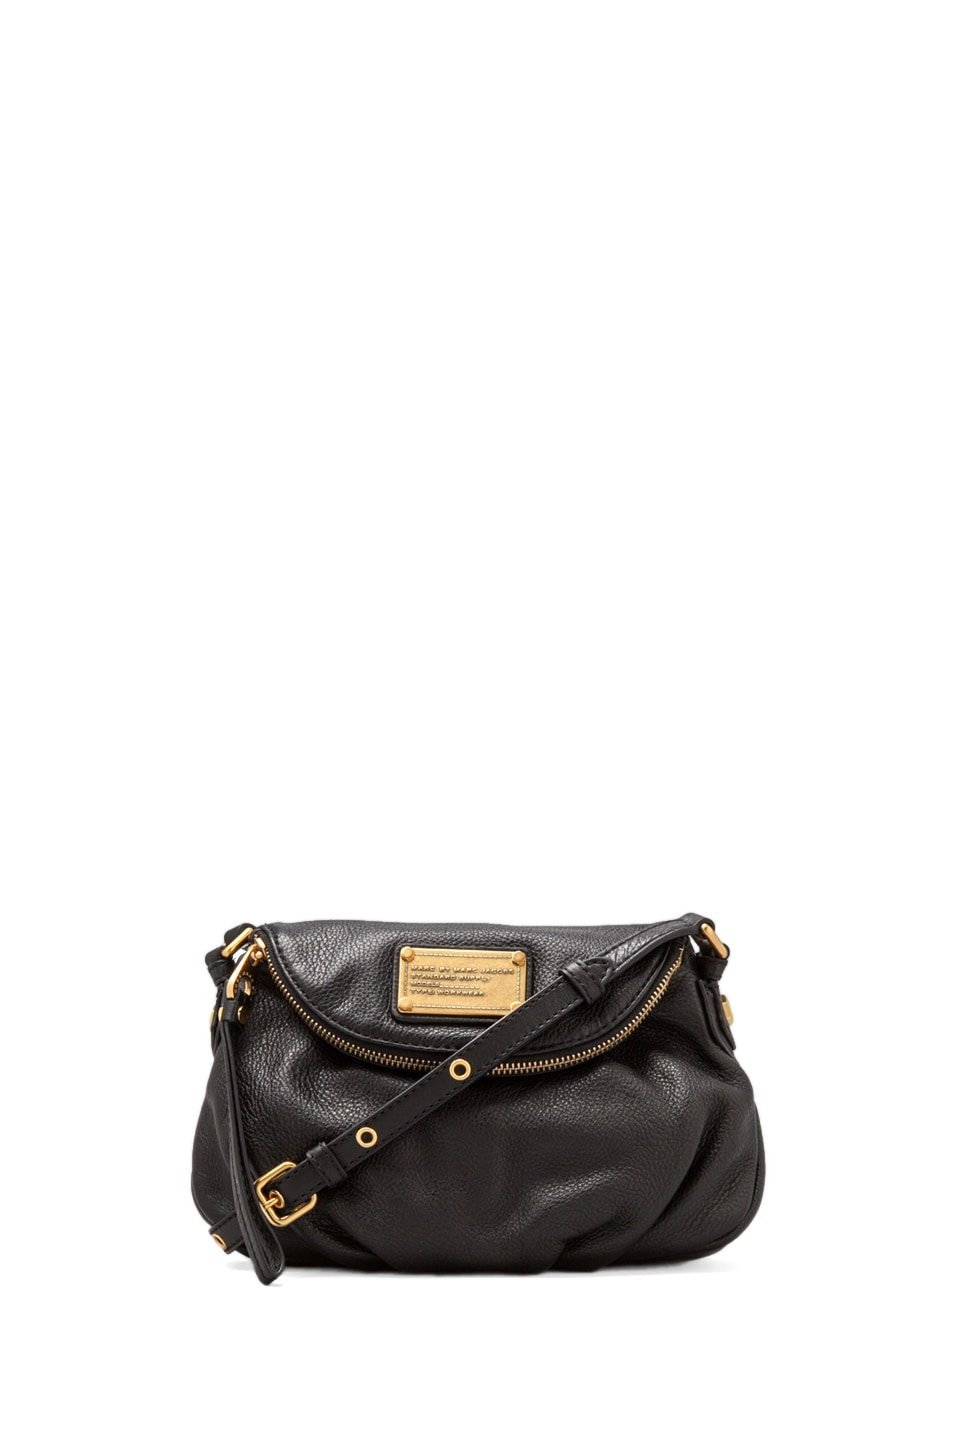 Marc by Marc Jacobs Classic Q Mini Natasha Crossbody in Black